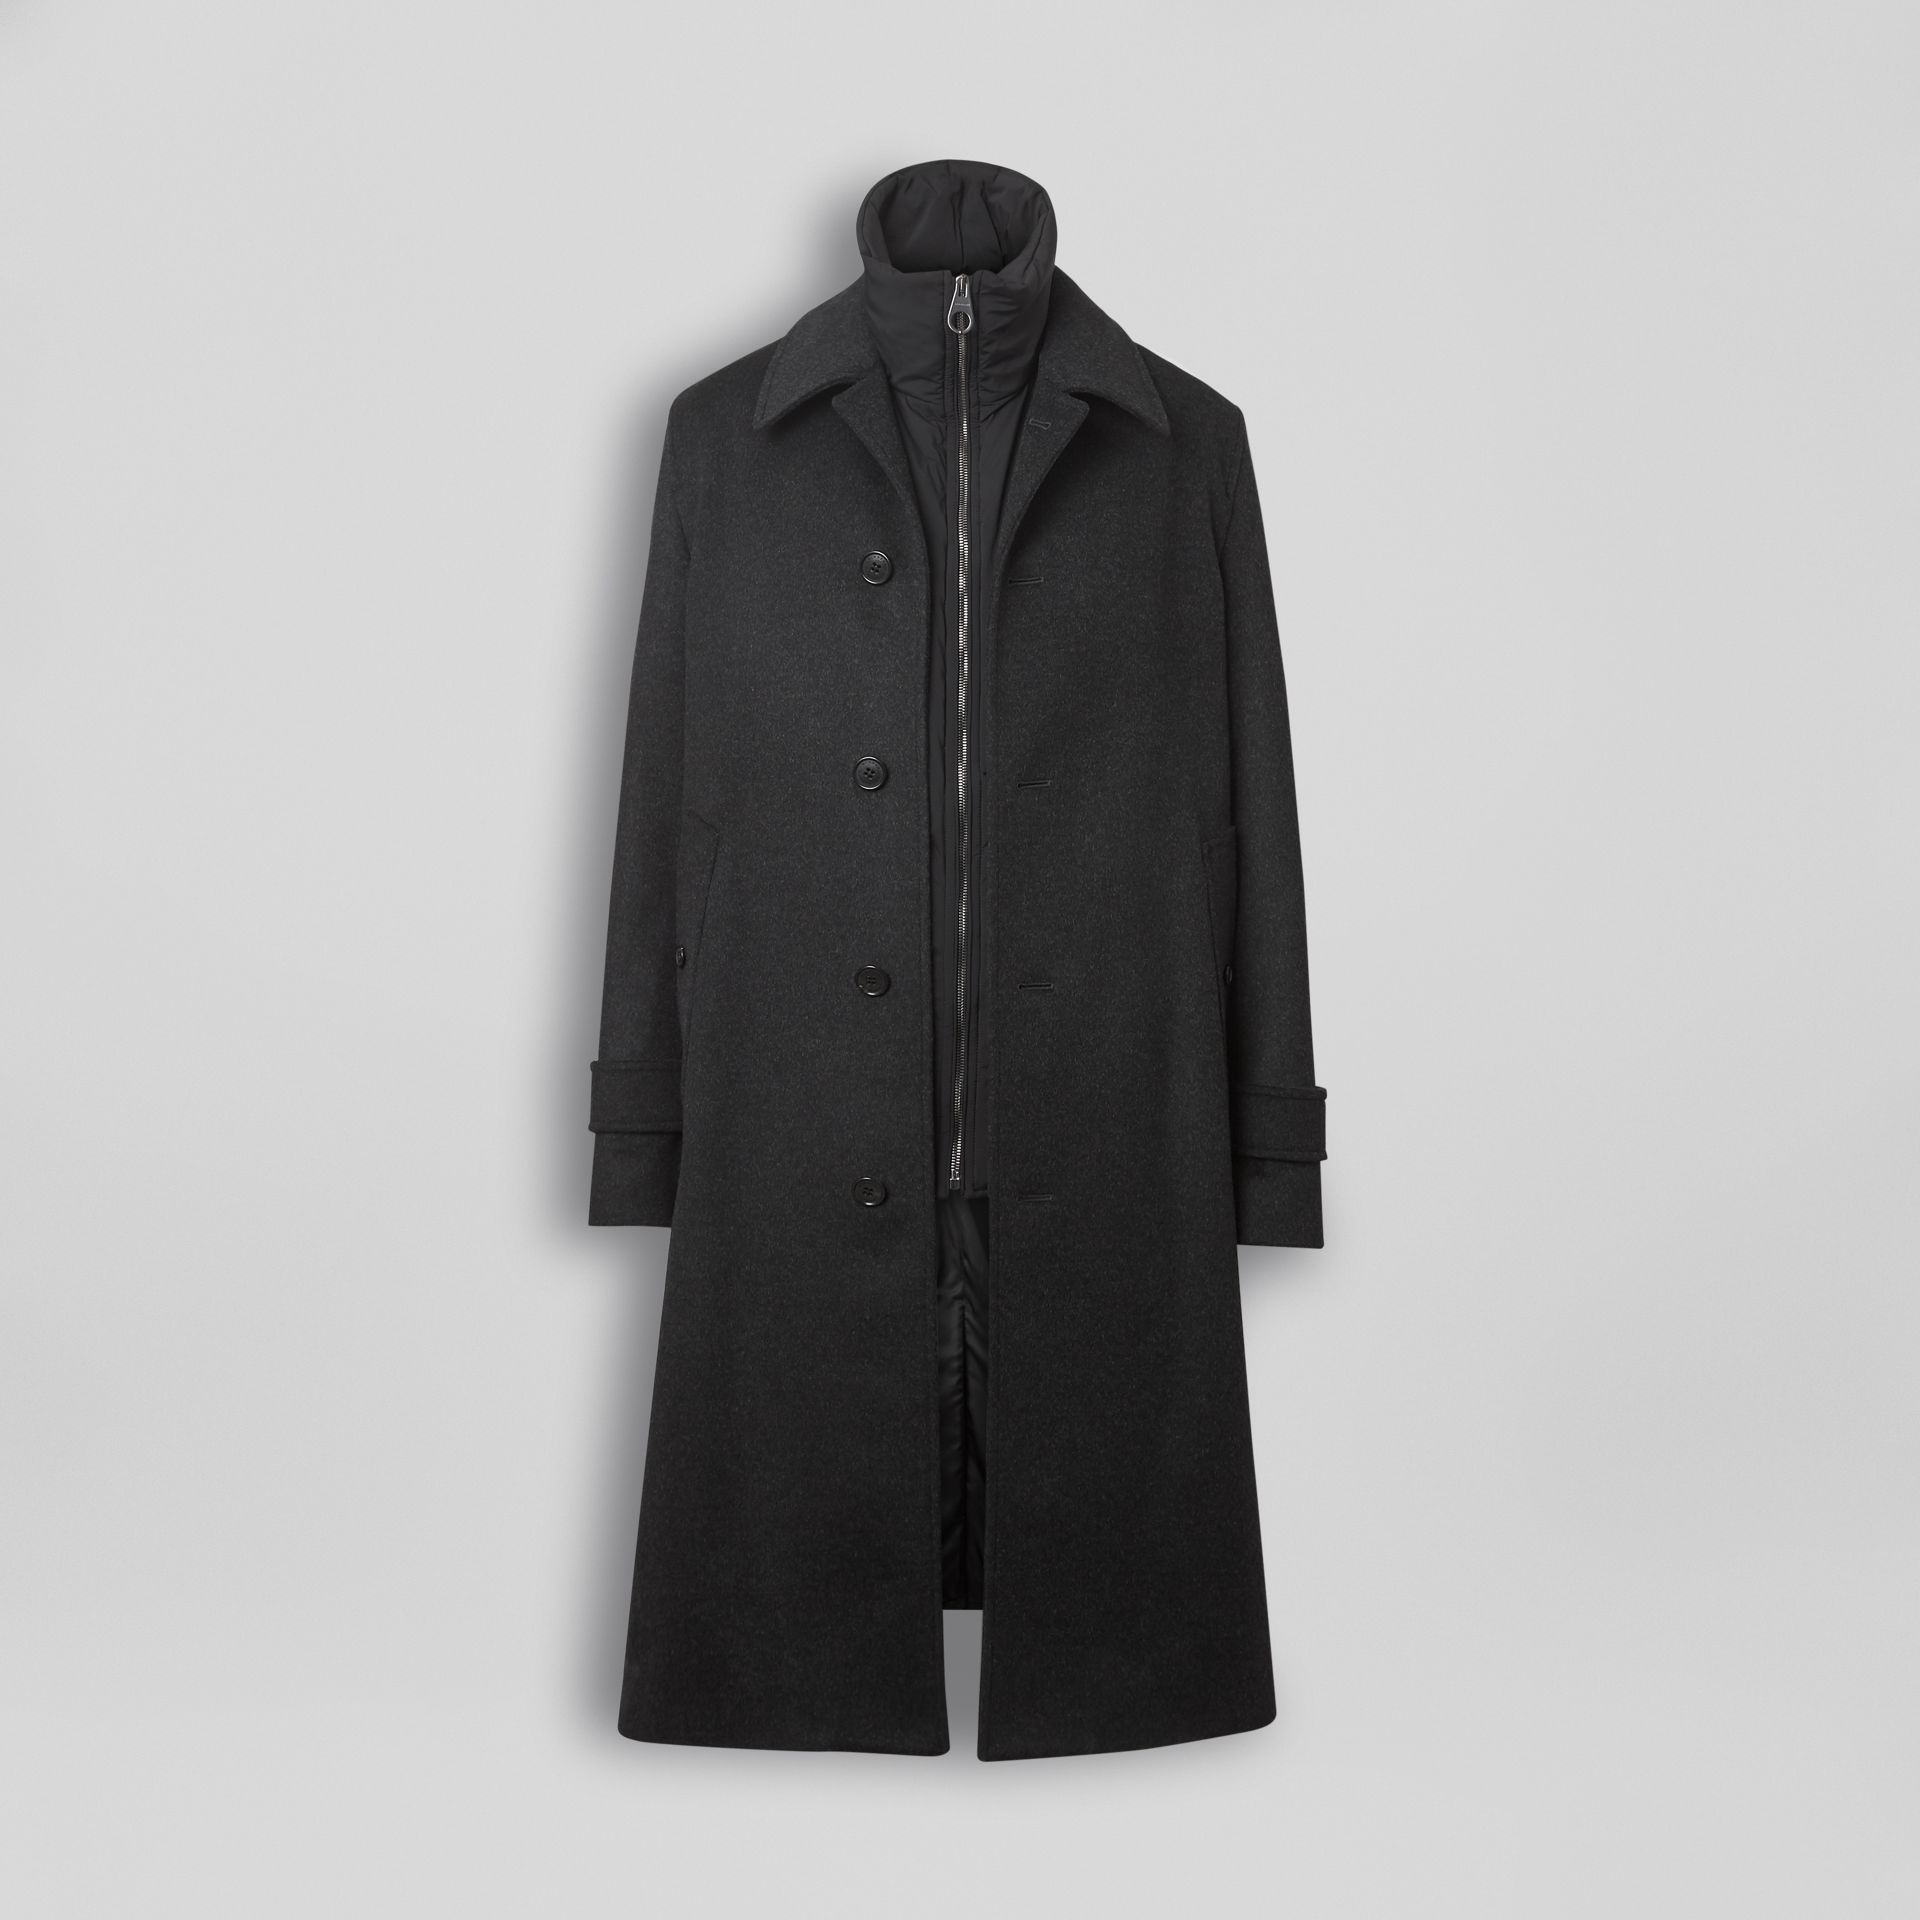 Wool Cashmere Car Coat with Detachable Gilet in Dark Grey Melange - Men | Burberry Australia - gallery image 3